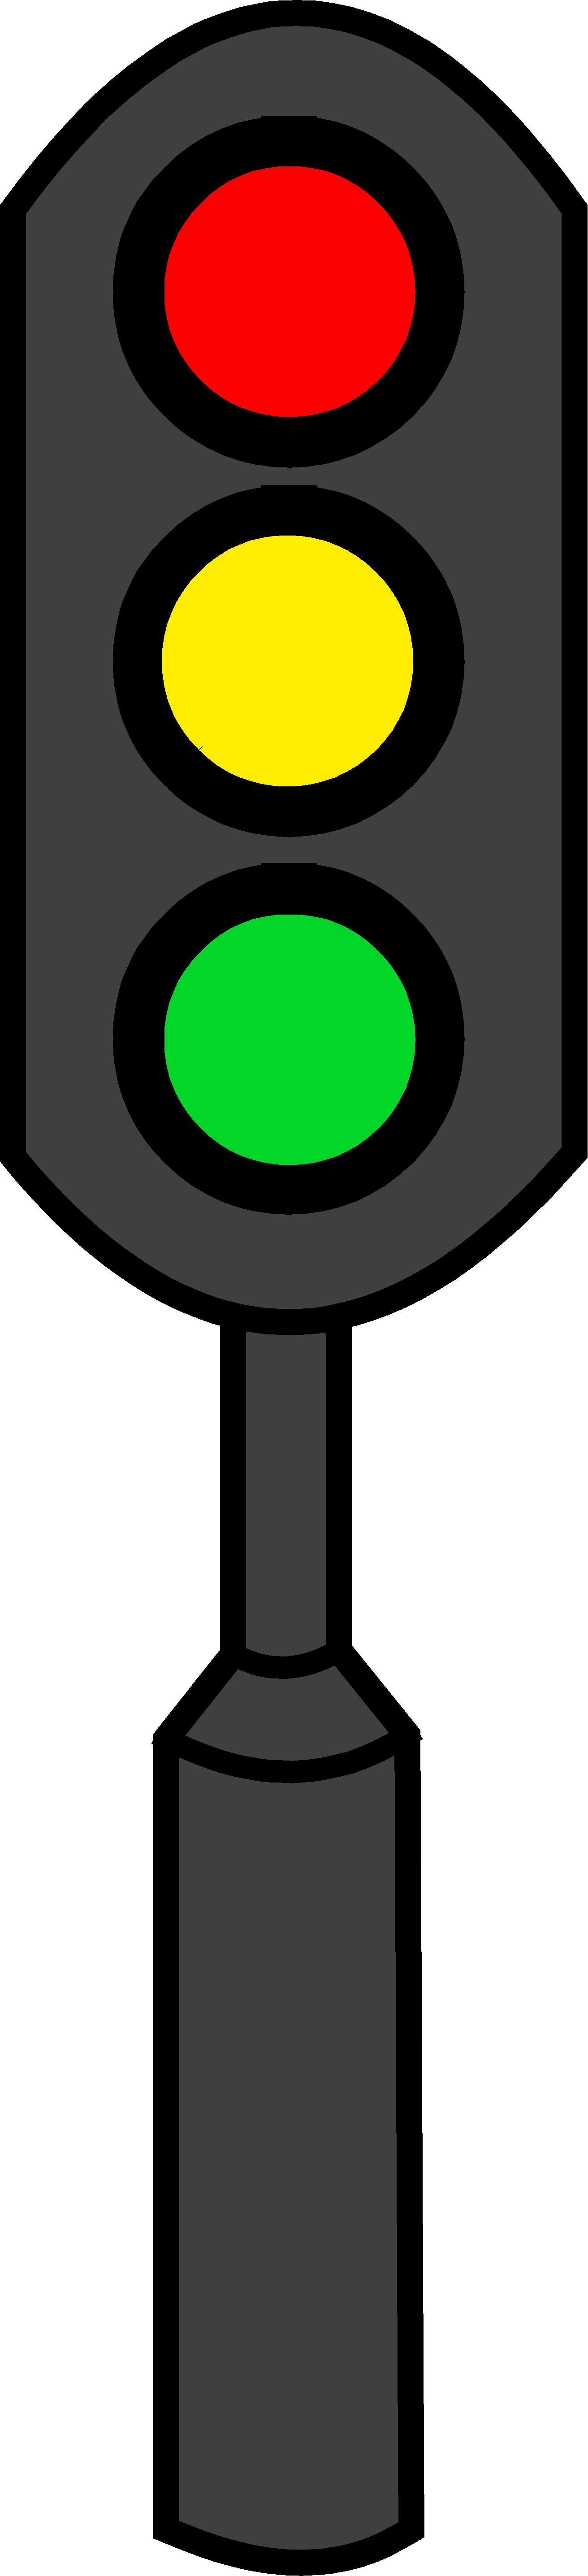 1312x5743 Traffic Light Clipart Single